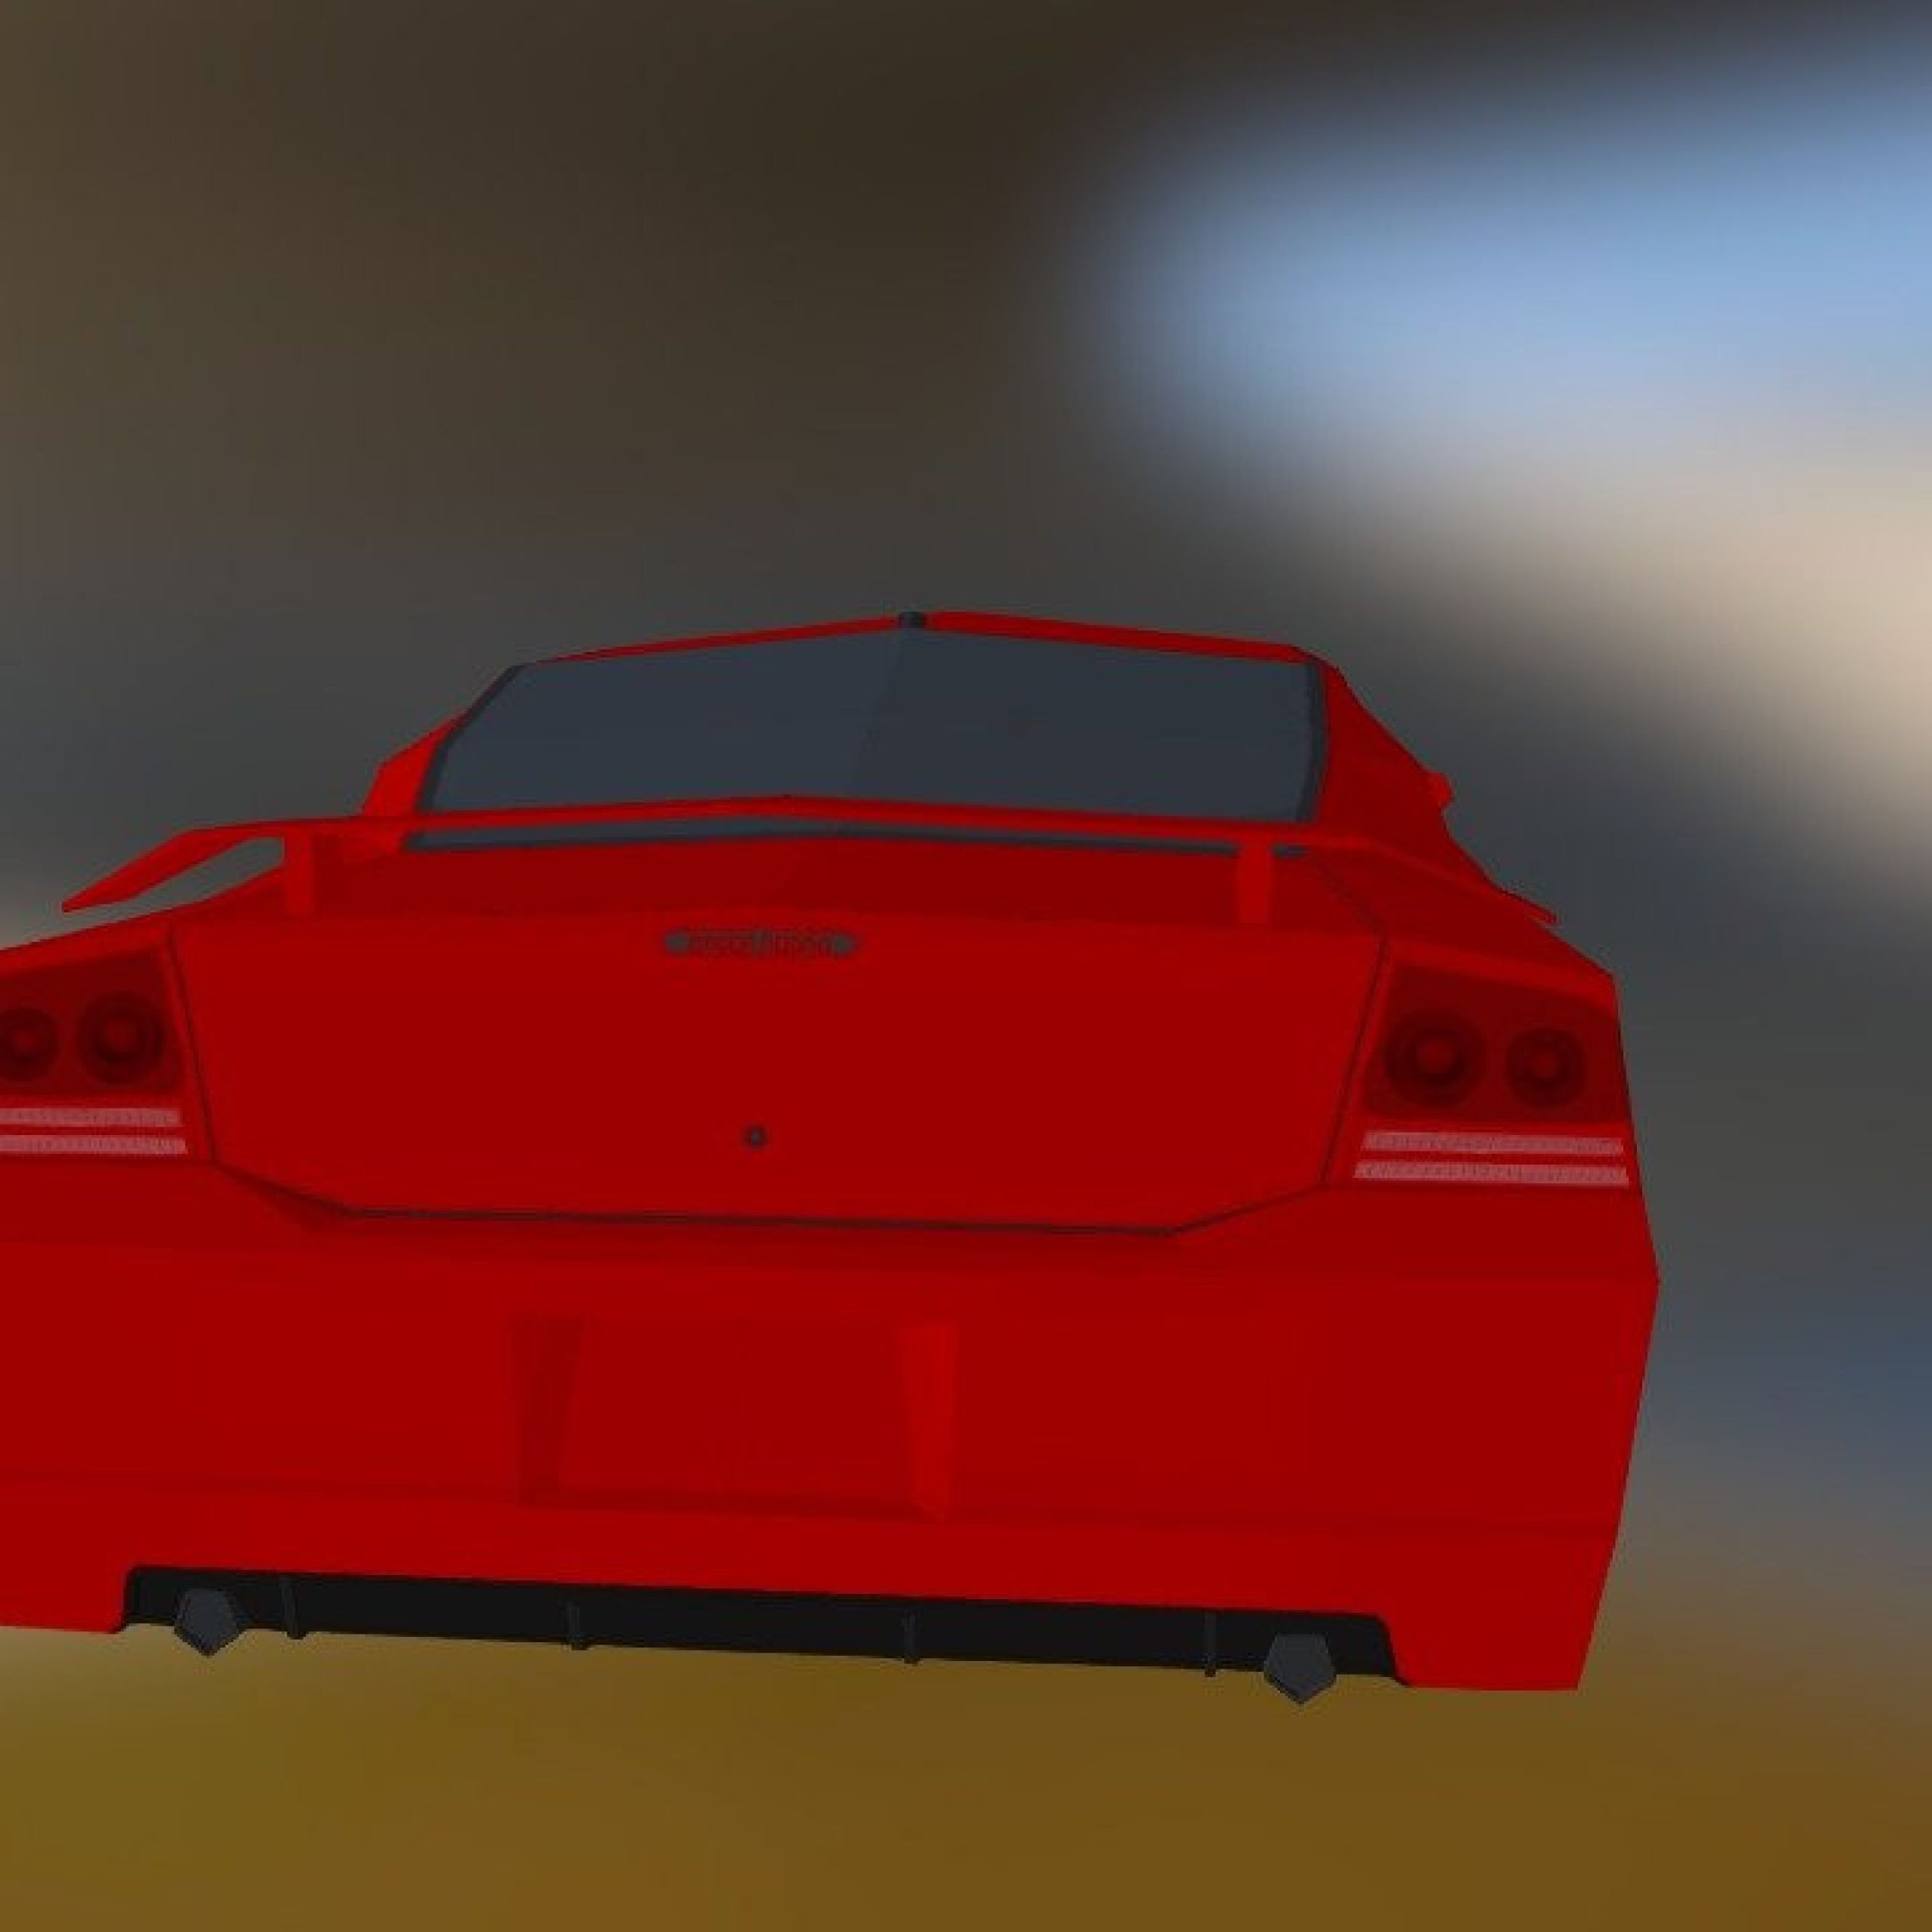 2006 Dodge Charger Awesome 2006 Dodge Charger Srt8 Download Free 3d Model by Steven B